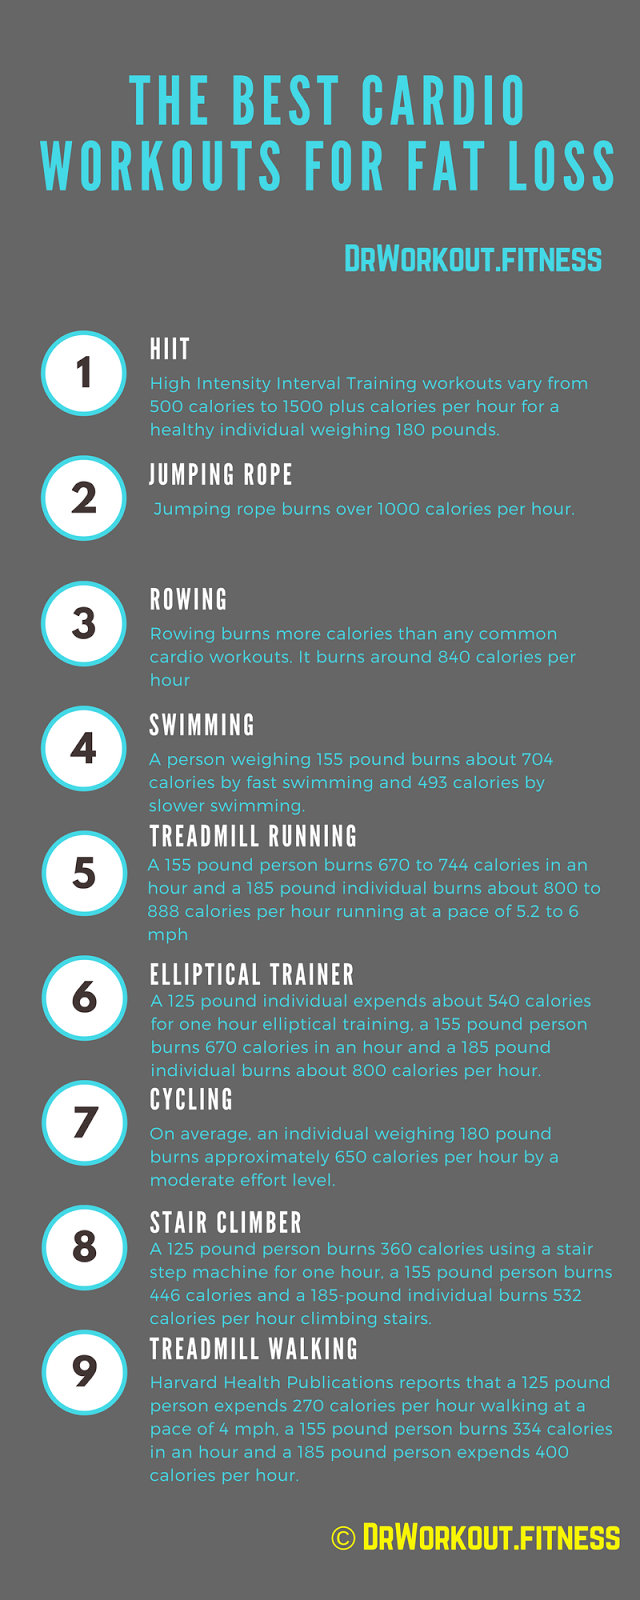 Best Cardio Workouts and Calories Burned